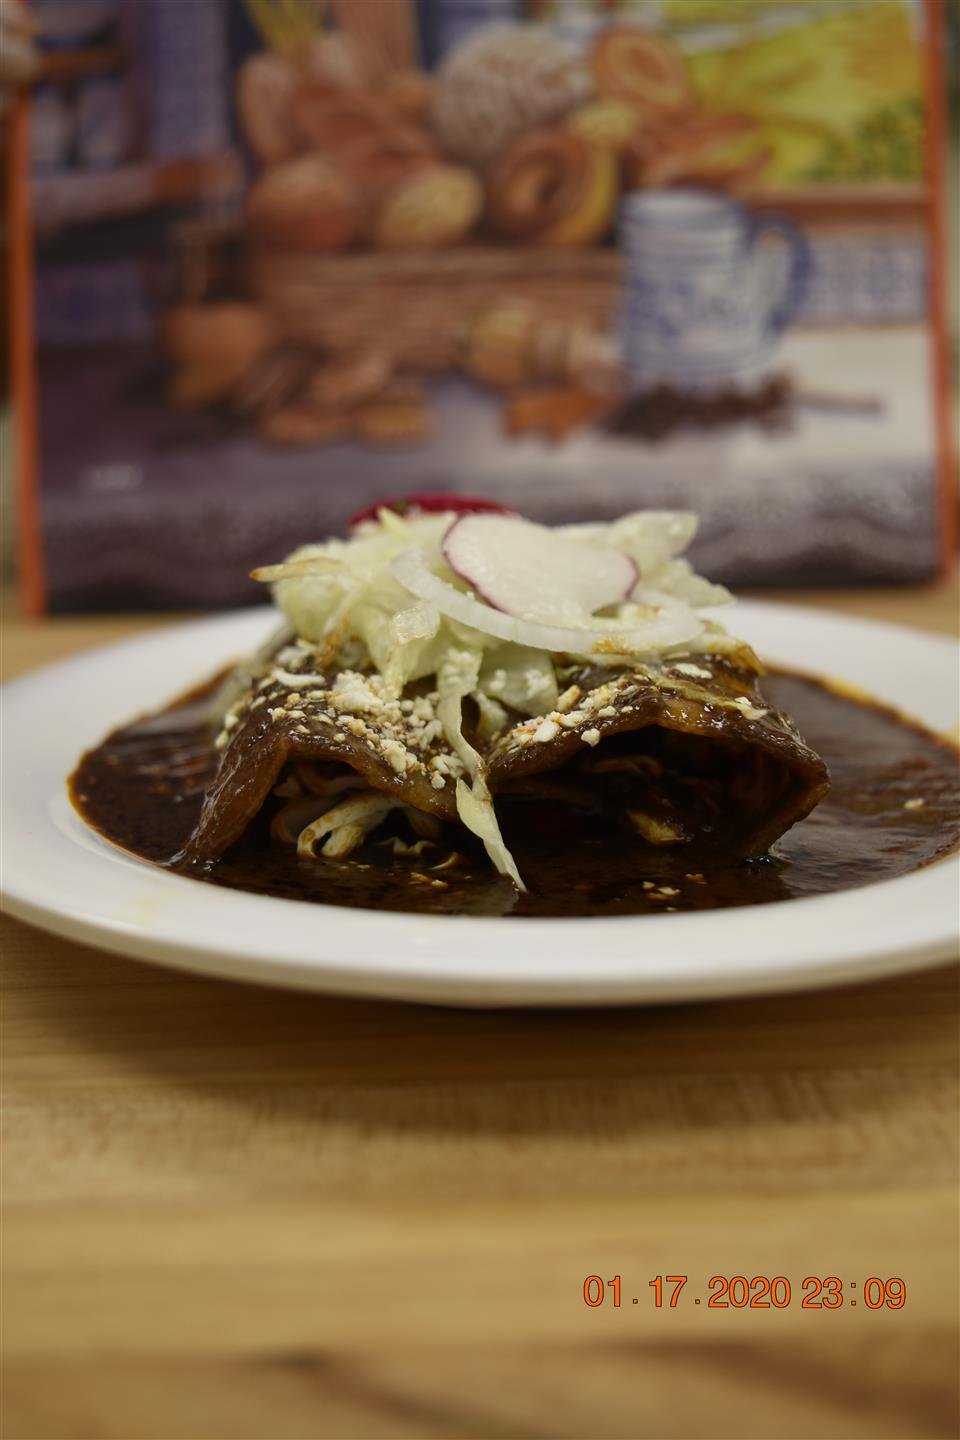 enchilada in a brown sauce